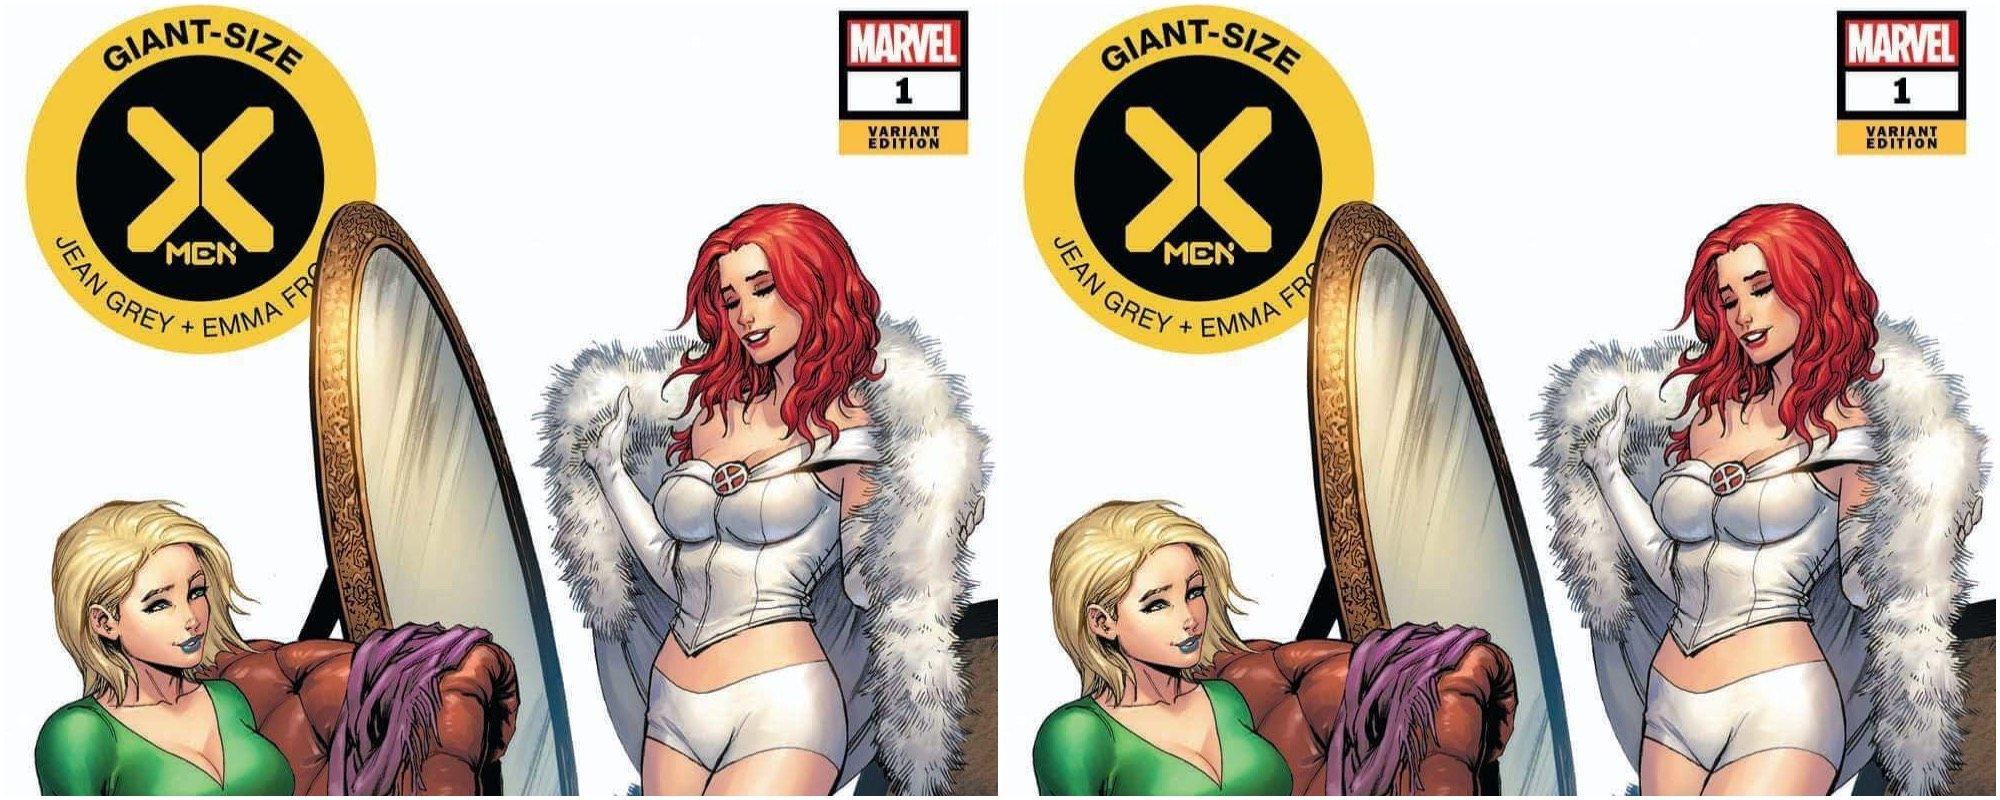 GIANT SIZE X-MEN JEAN GREY AND EMMA FROST #1 C2E2 TYLER KIRKHAM EXCLUSIVE VARIANT